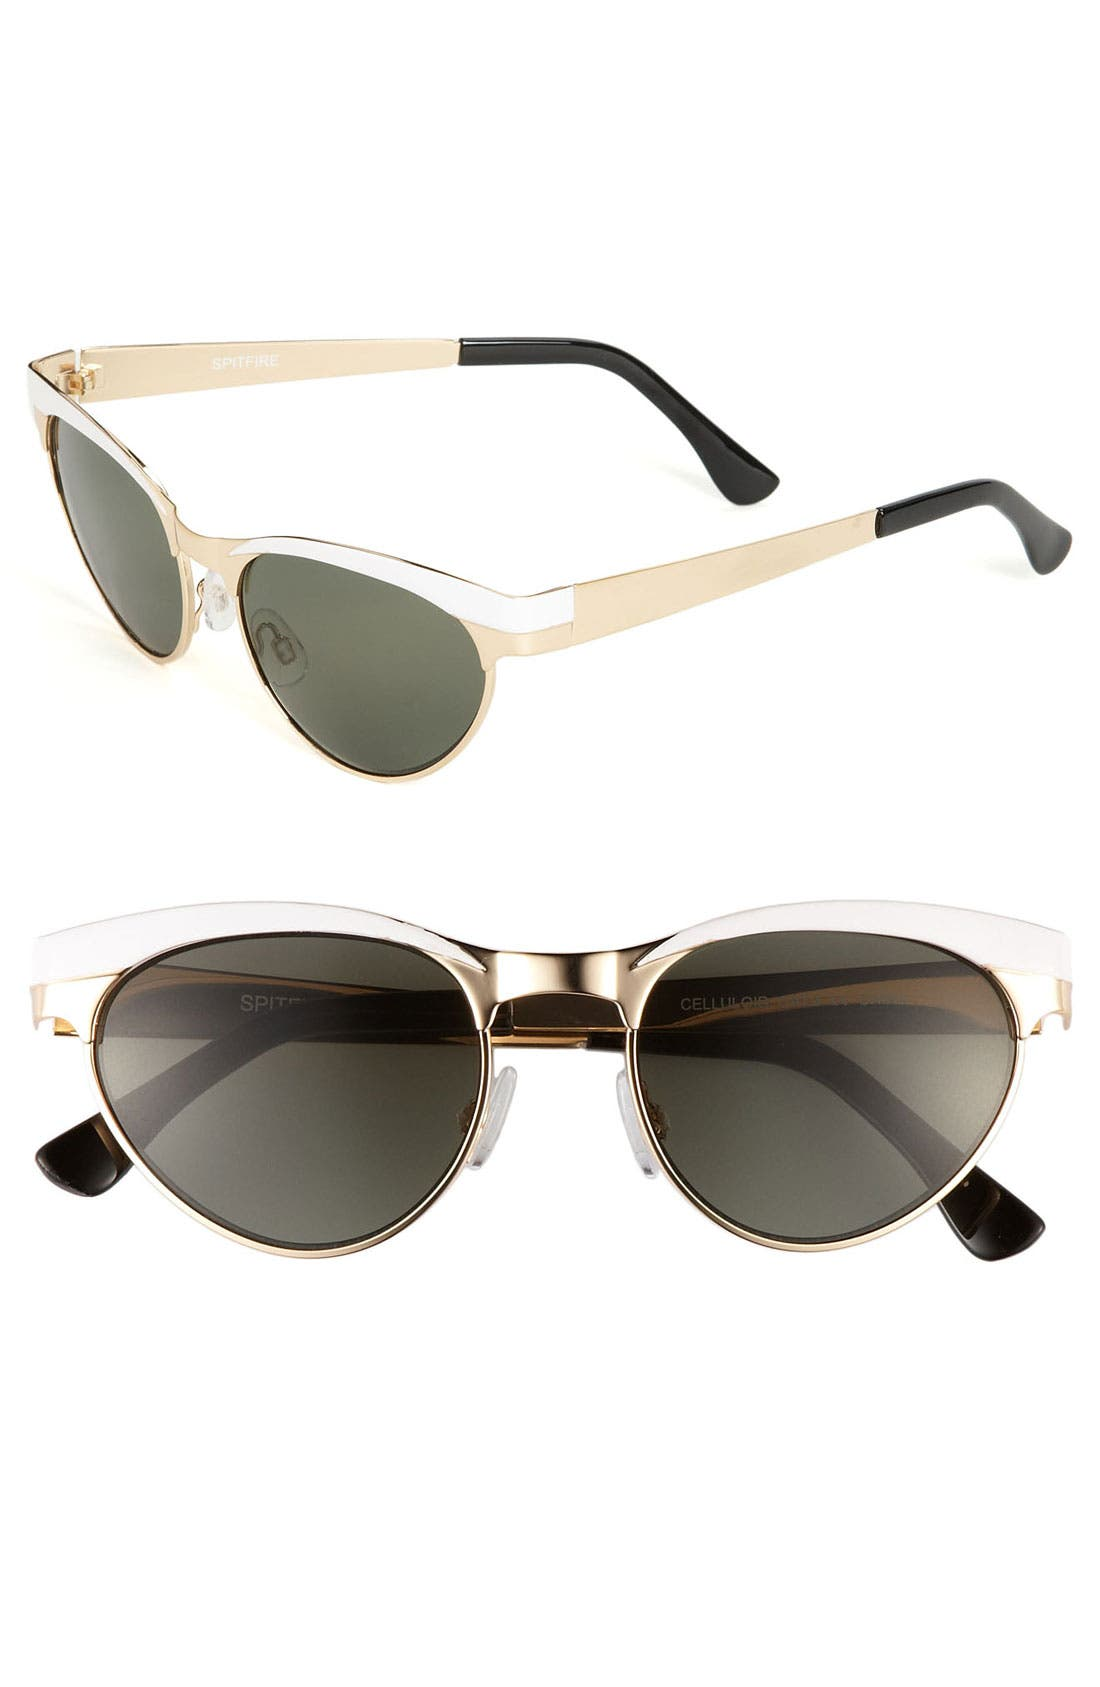 Main Image - Spitfire Cat's Eye Metal Sunglasses